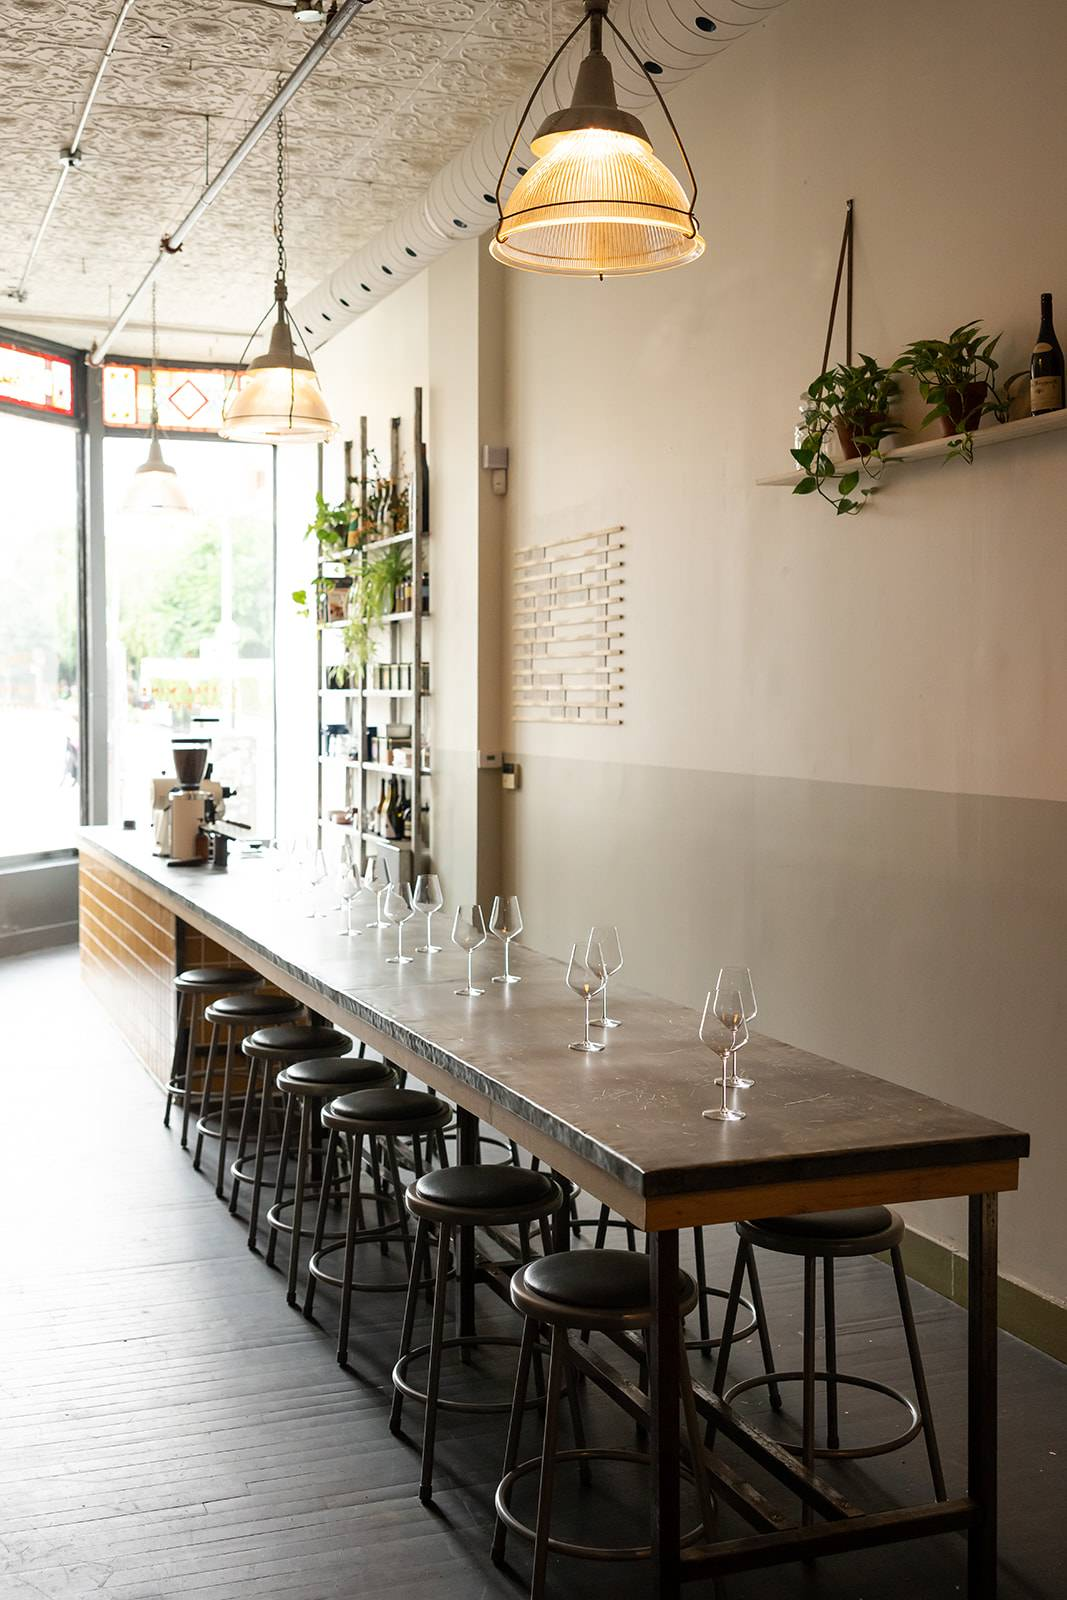 """<h1 style=""""color: #5e9ca0;""""><span style=""""color: #000000;"""">Welcome to Peter Pantry.</span></h1> <p><i>371 Queen Street West, Toronto</i></p> <p>Open 7 days a week, 8am-midnight.</p><p>Coffee, Wine & Food </p><p>Shop Online for Pickup or Delivery.</p>"""